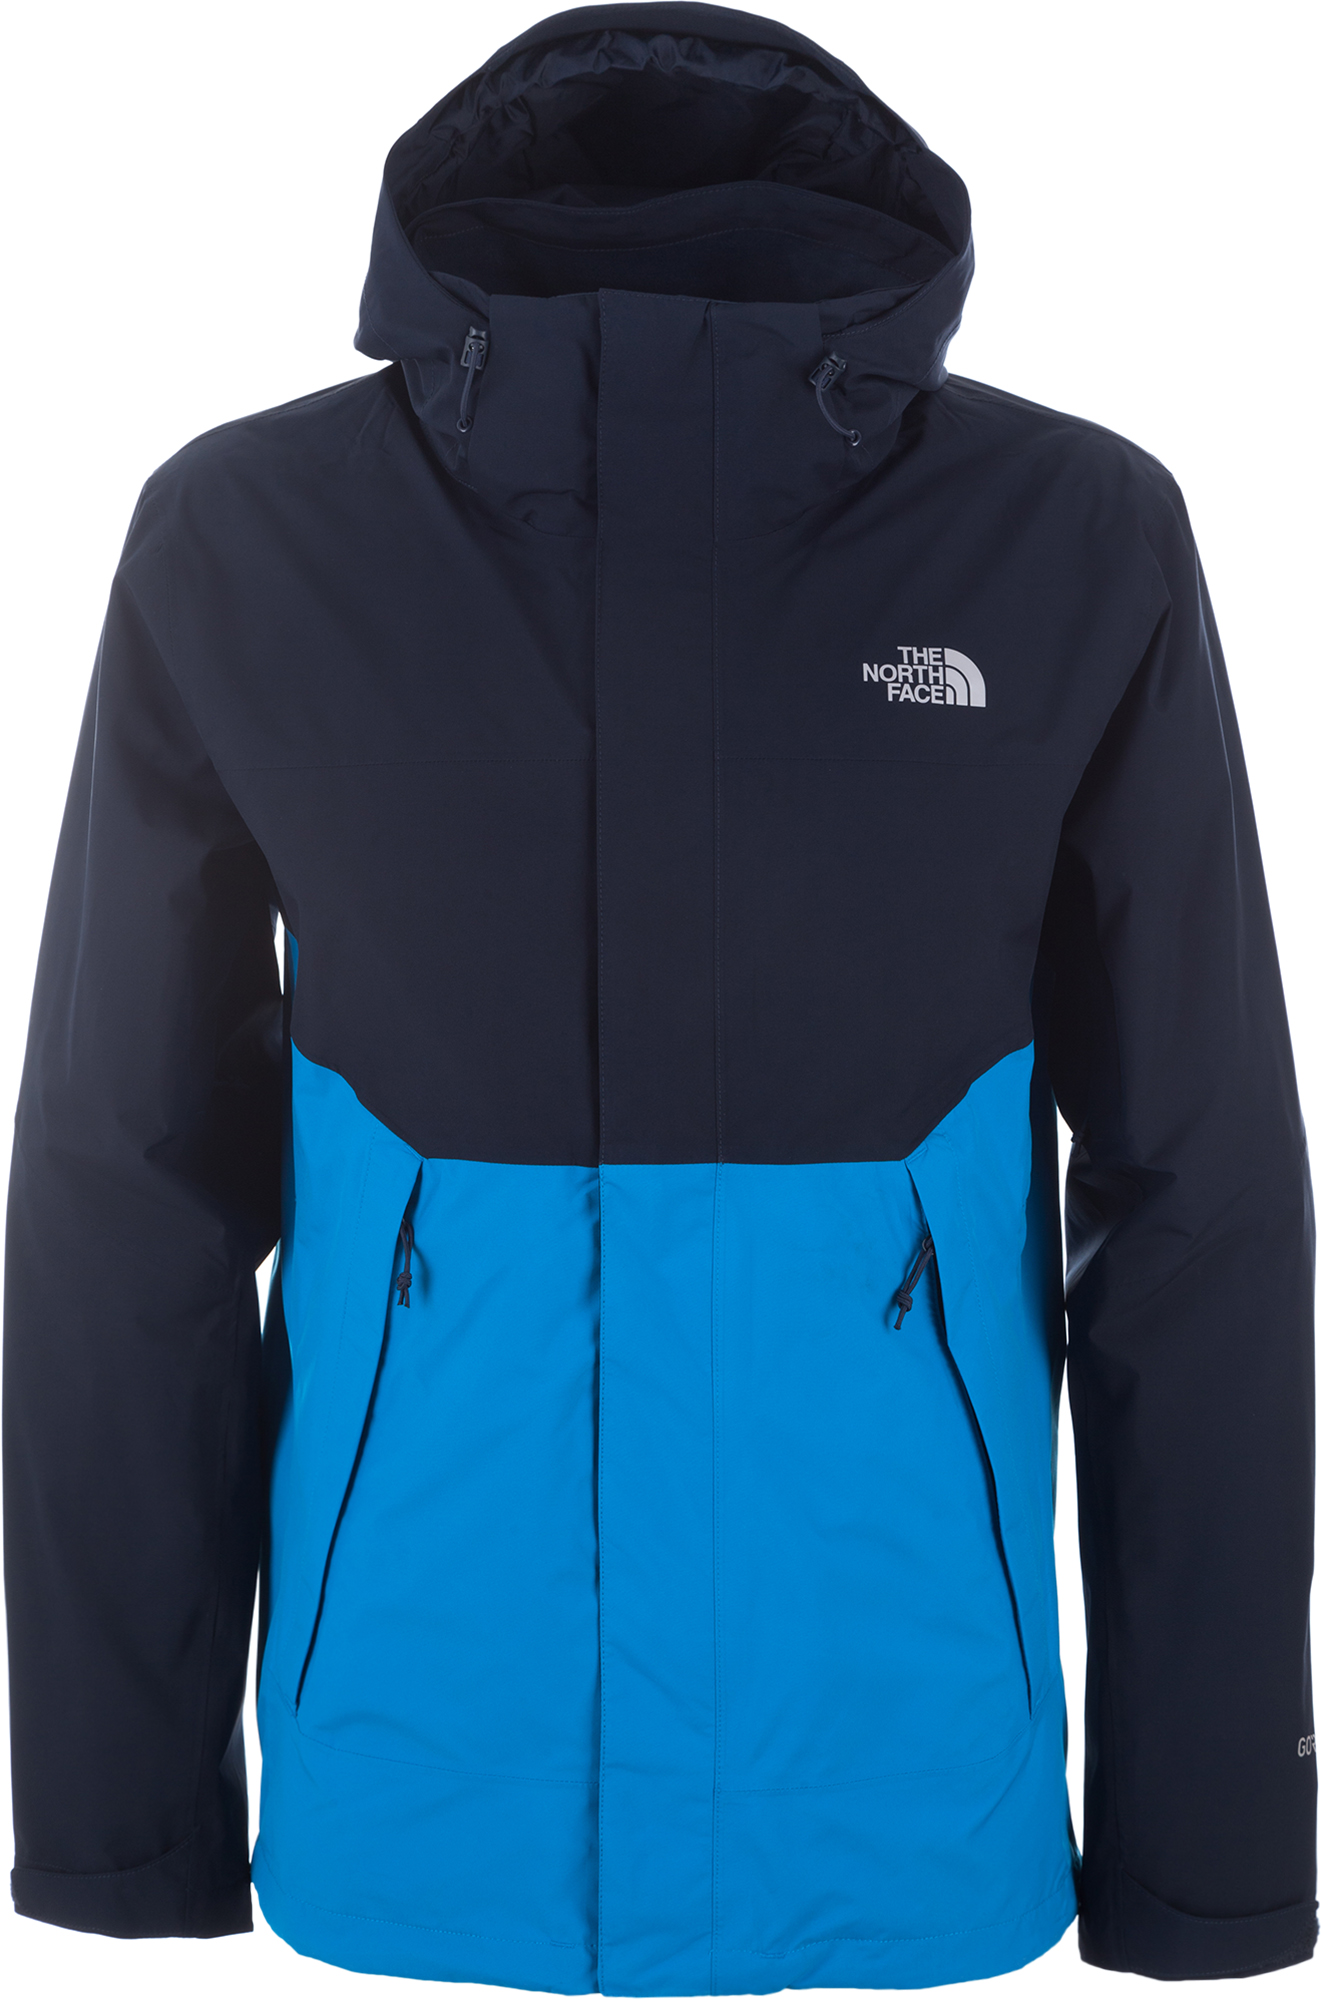 The North Face Ветровка мужская The North Face Mountain Light II, размер 52